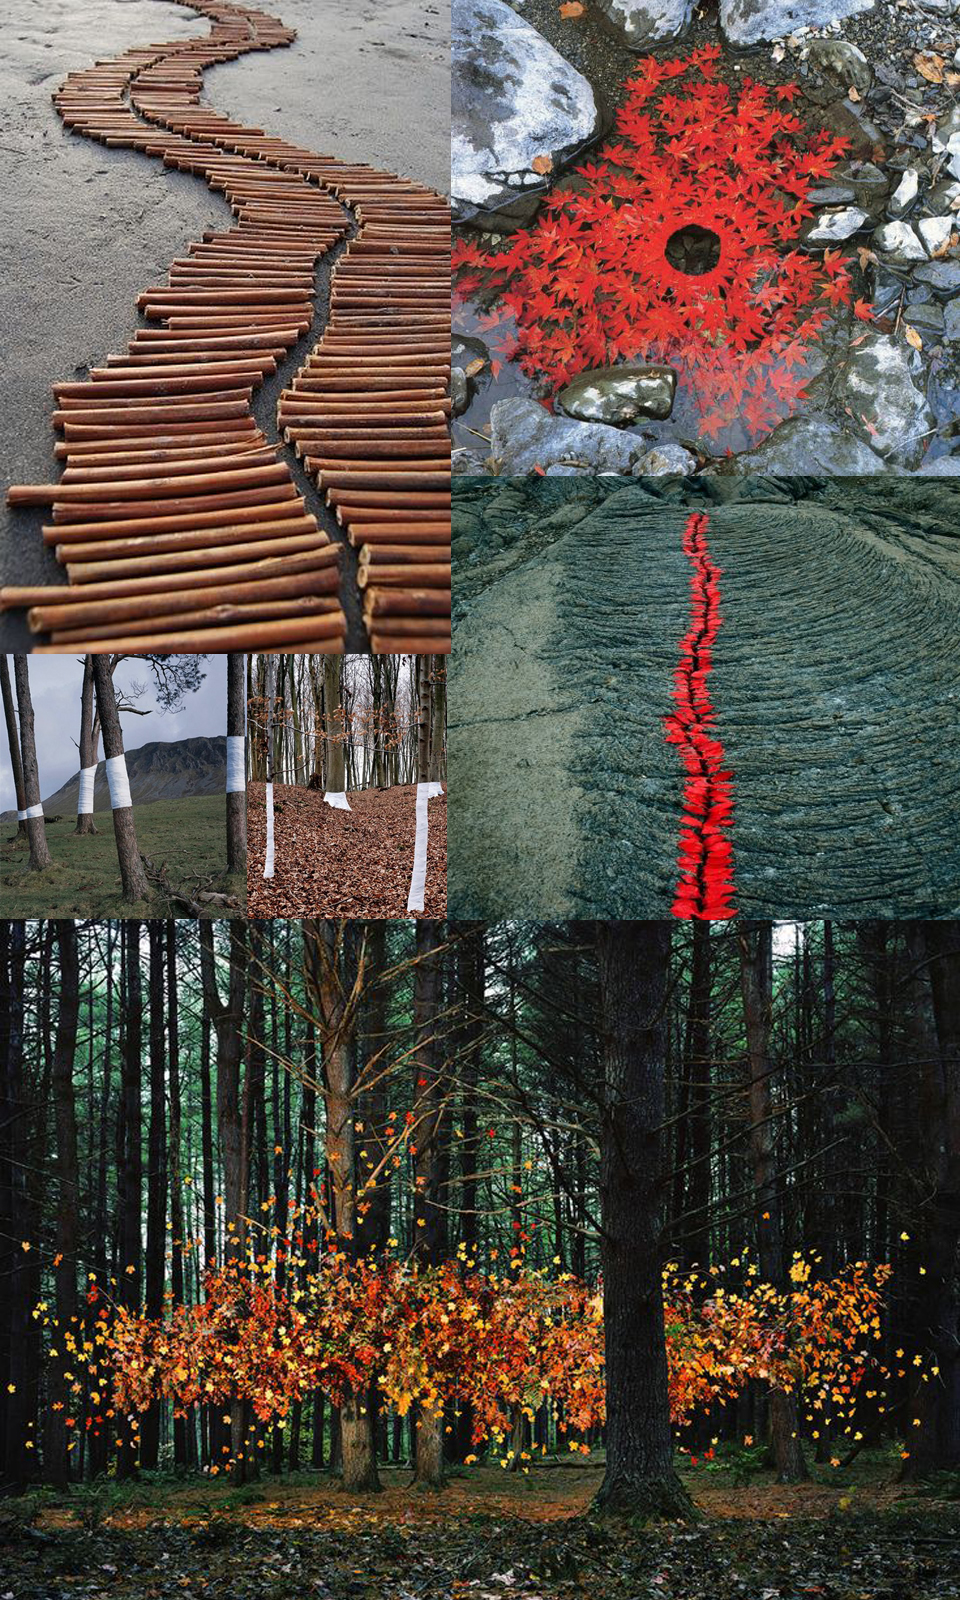 Andy Goldsworthy, Nils Udo, Zander Olsen, and Thomas Joackson